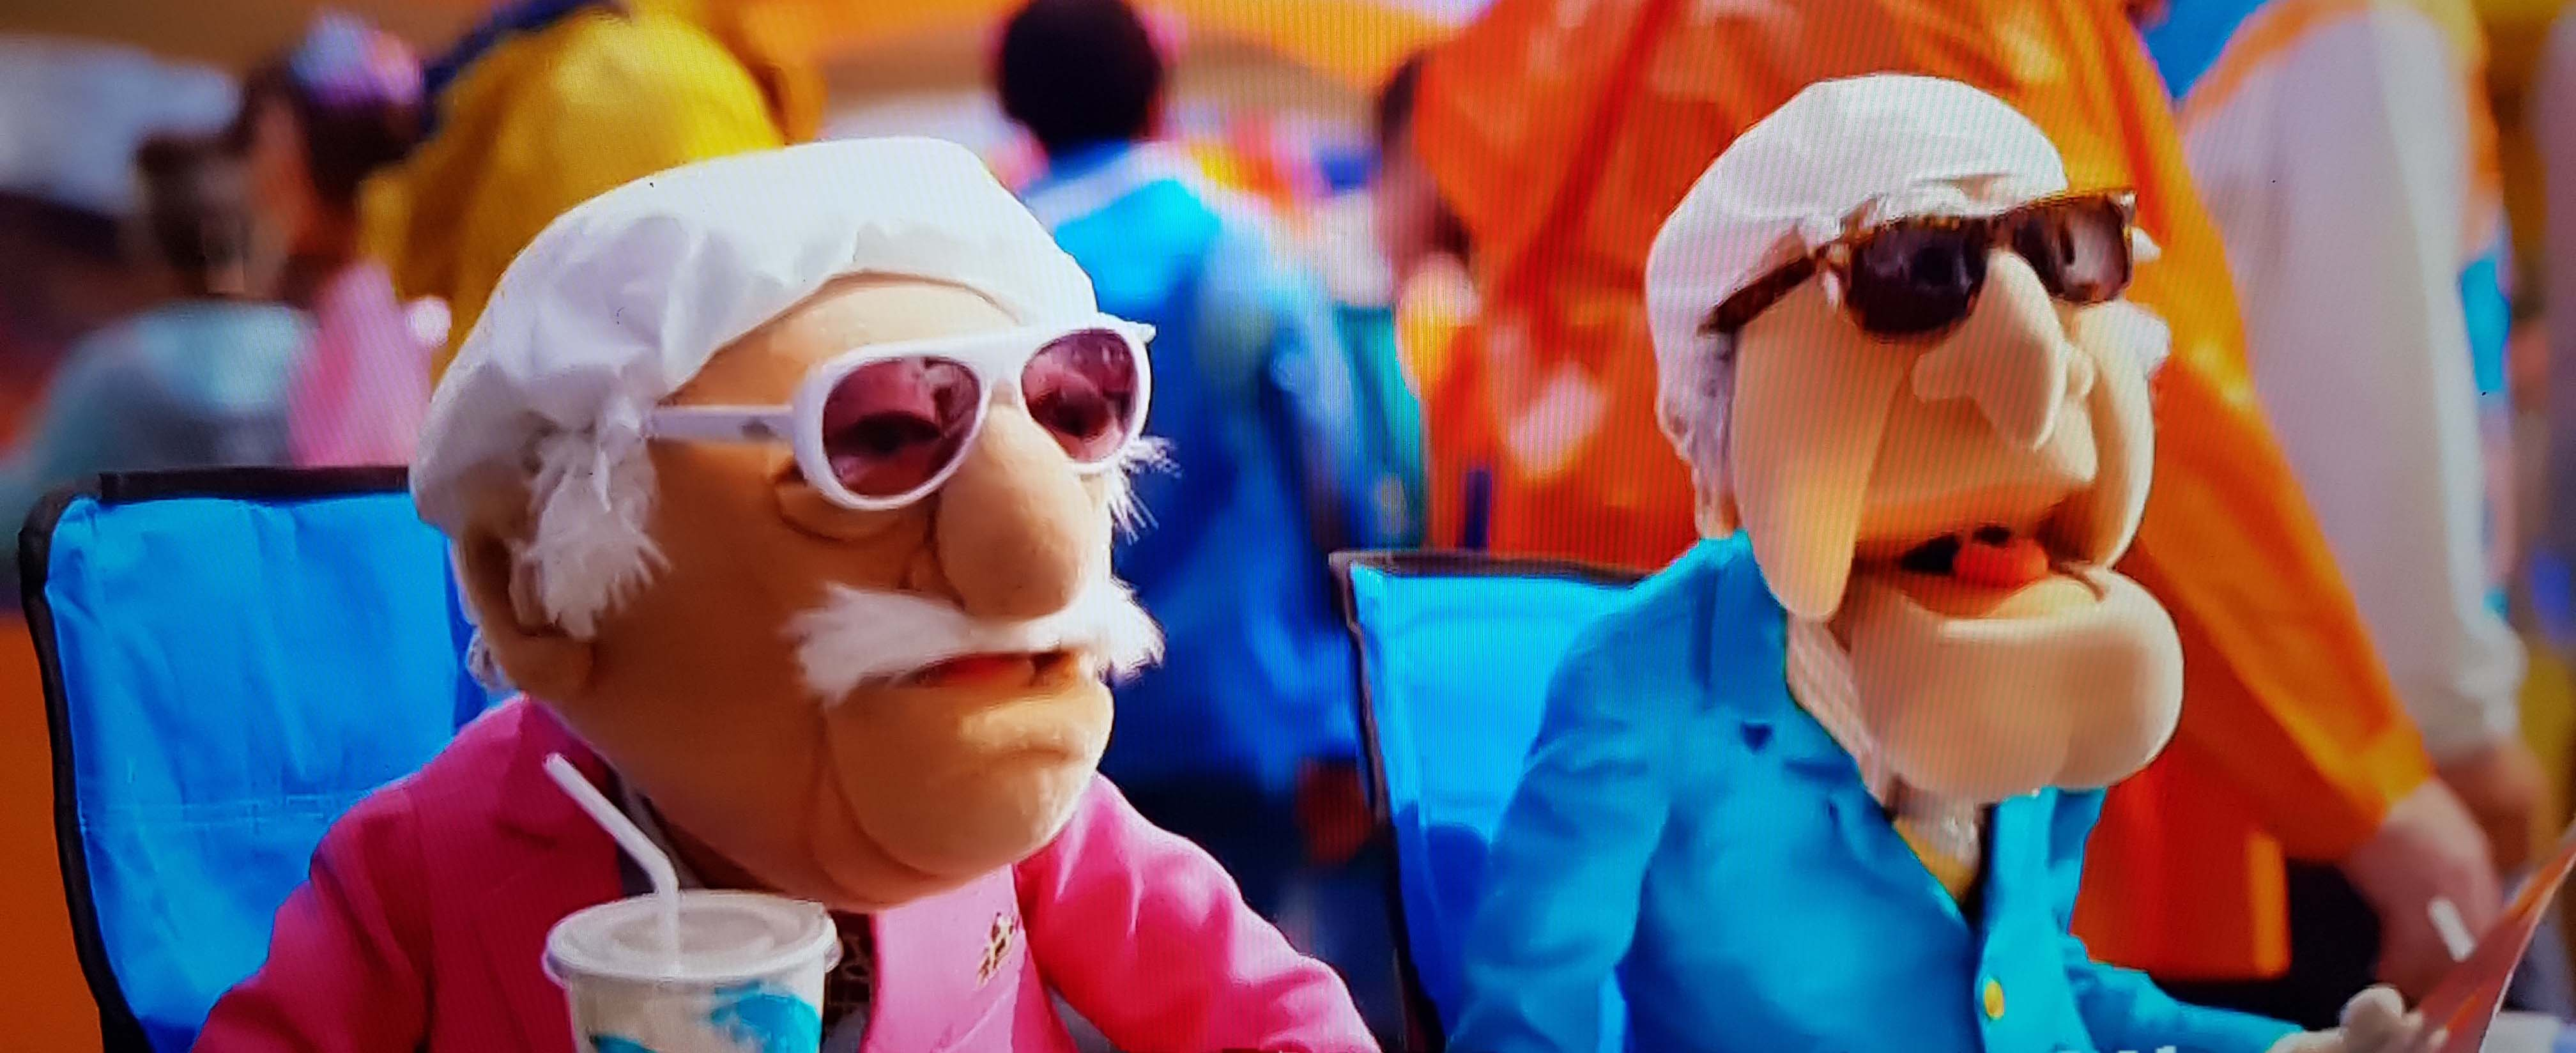 Australian Cricket Tours - The Muppets' Baclcony Hecklers, Waldorf & Statler Sitting At The Cricket In England